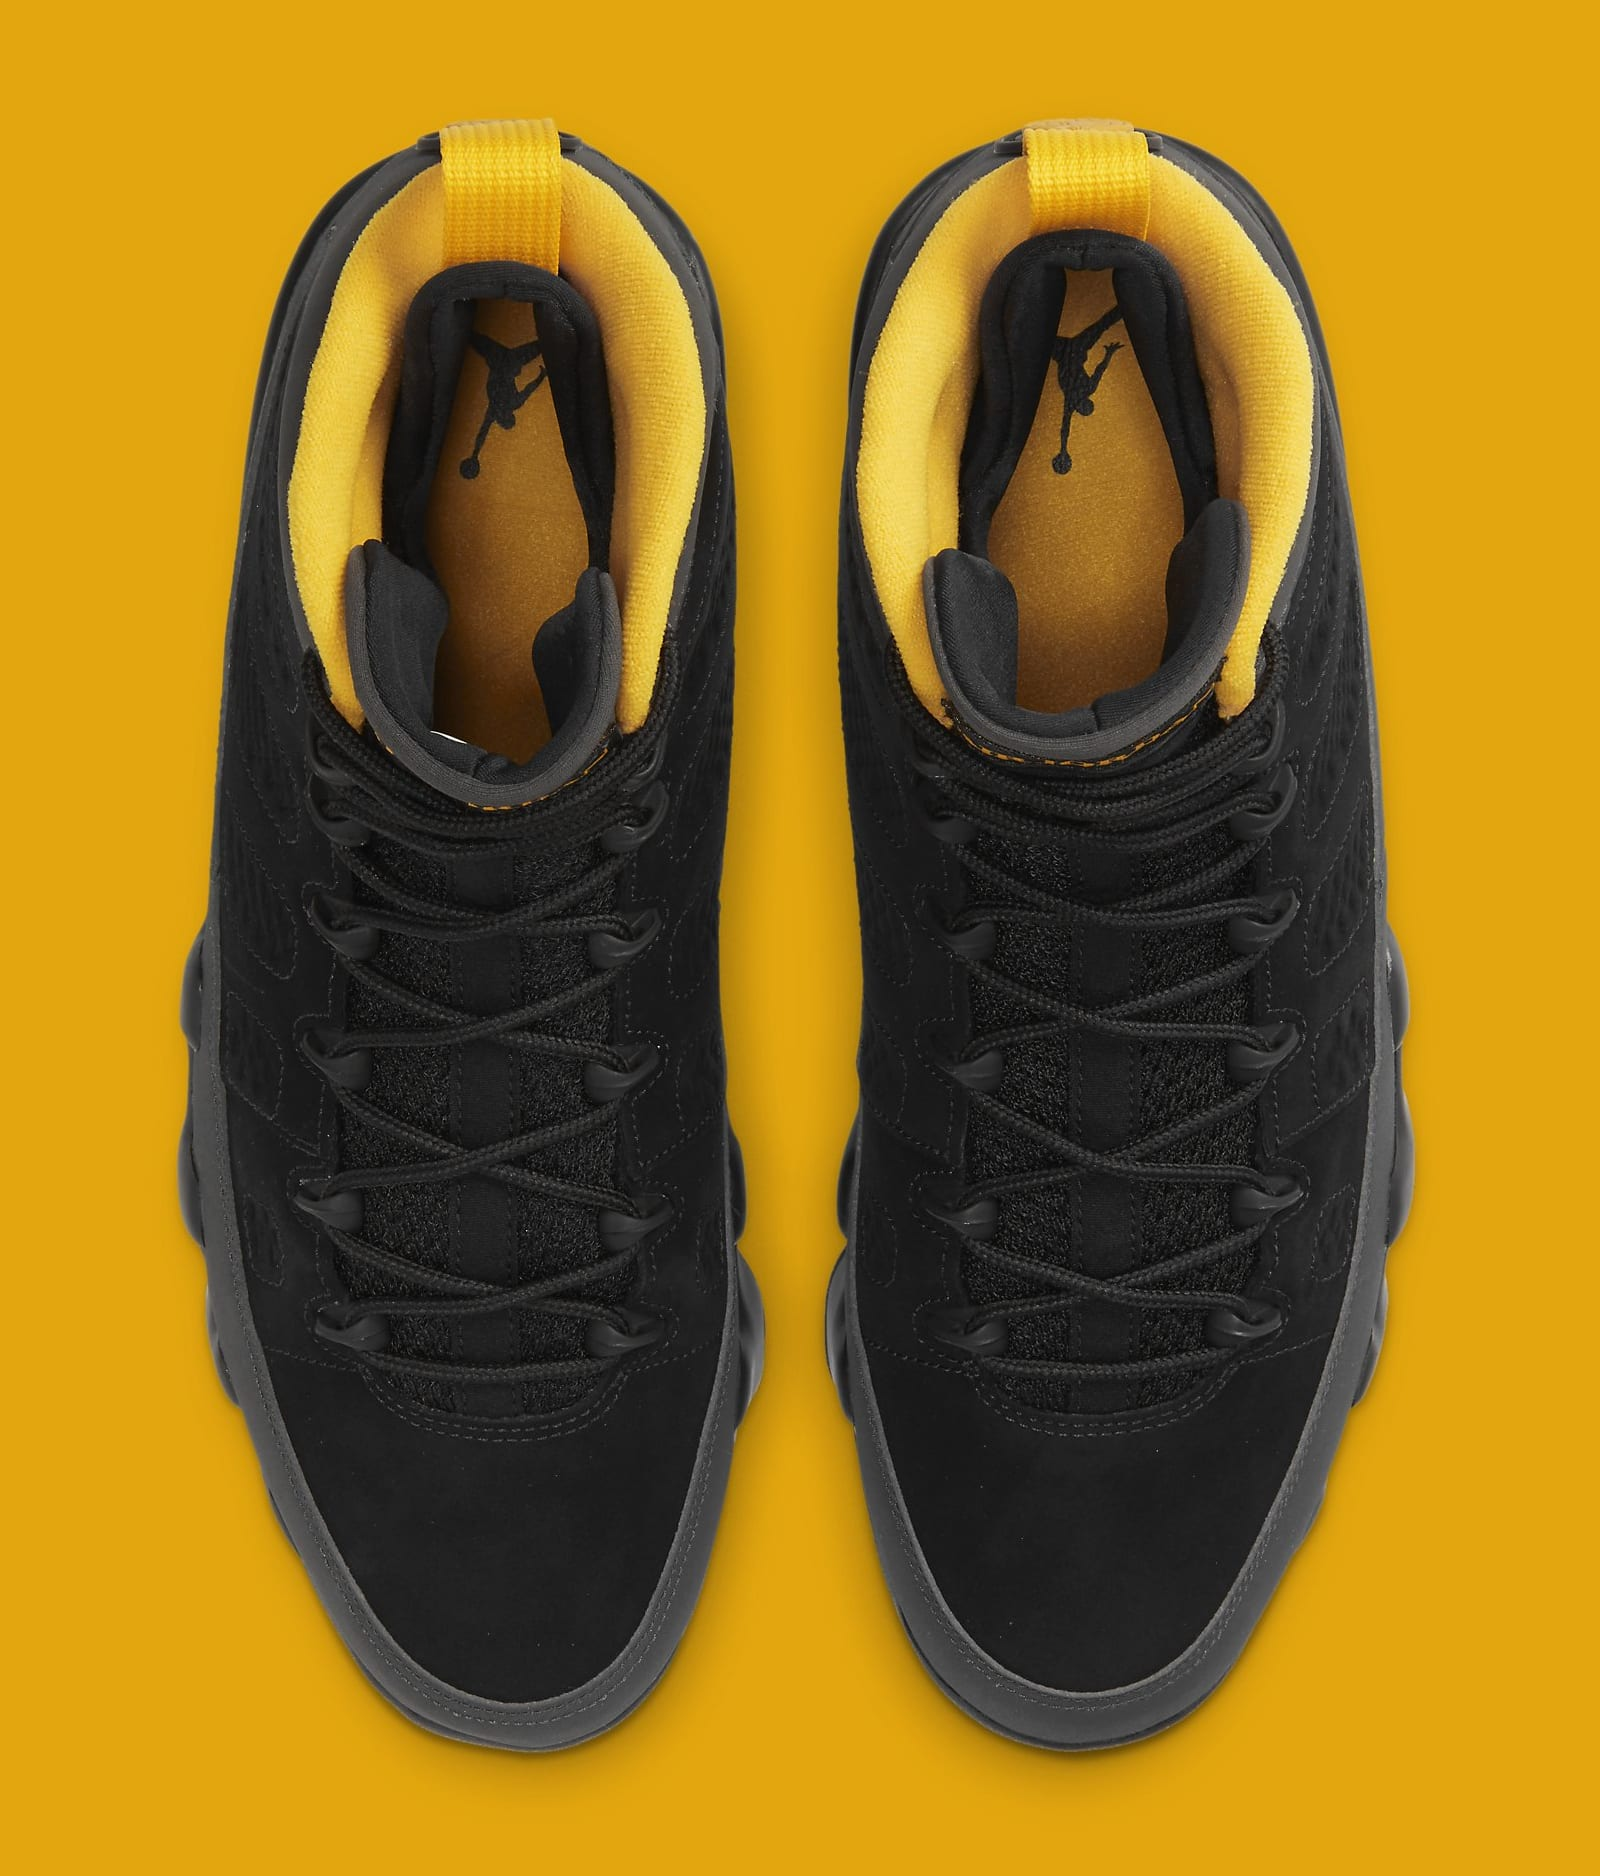 Air Jordan 9 Retro 'University Gold' CT8019-070 Top